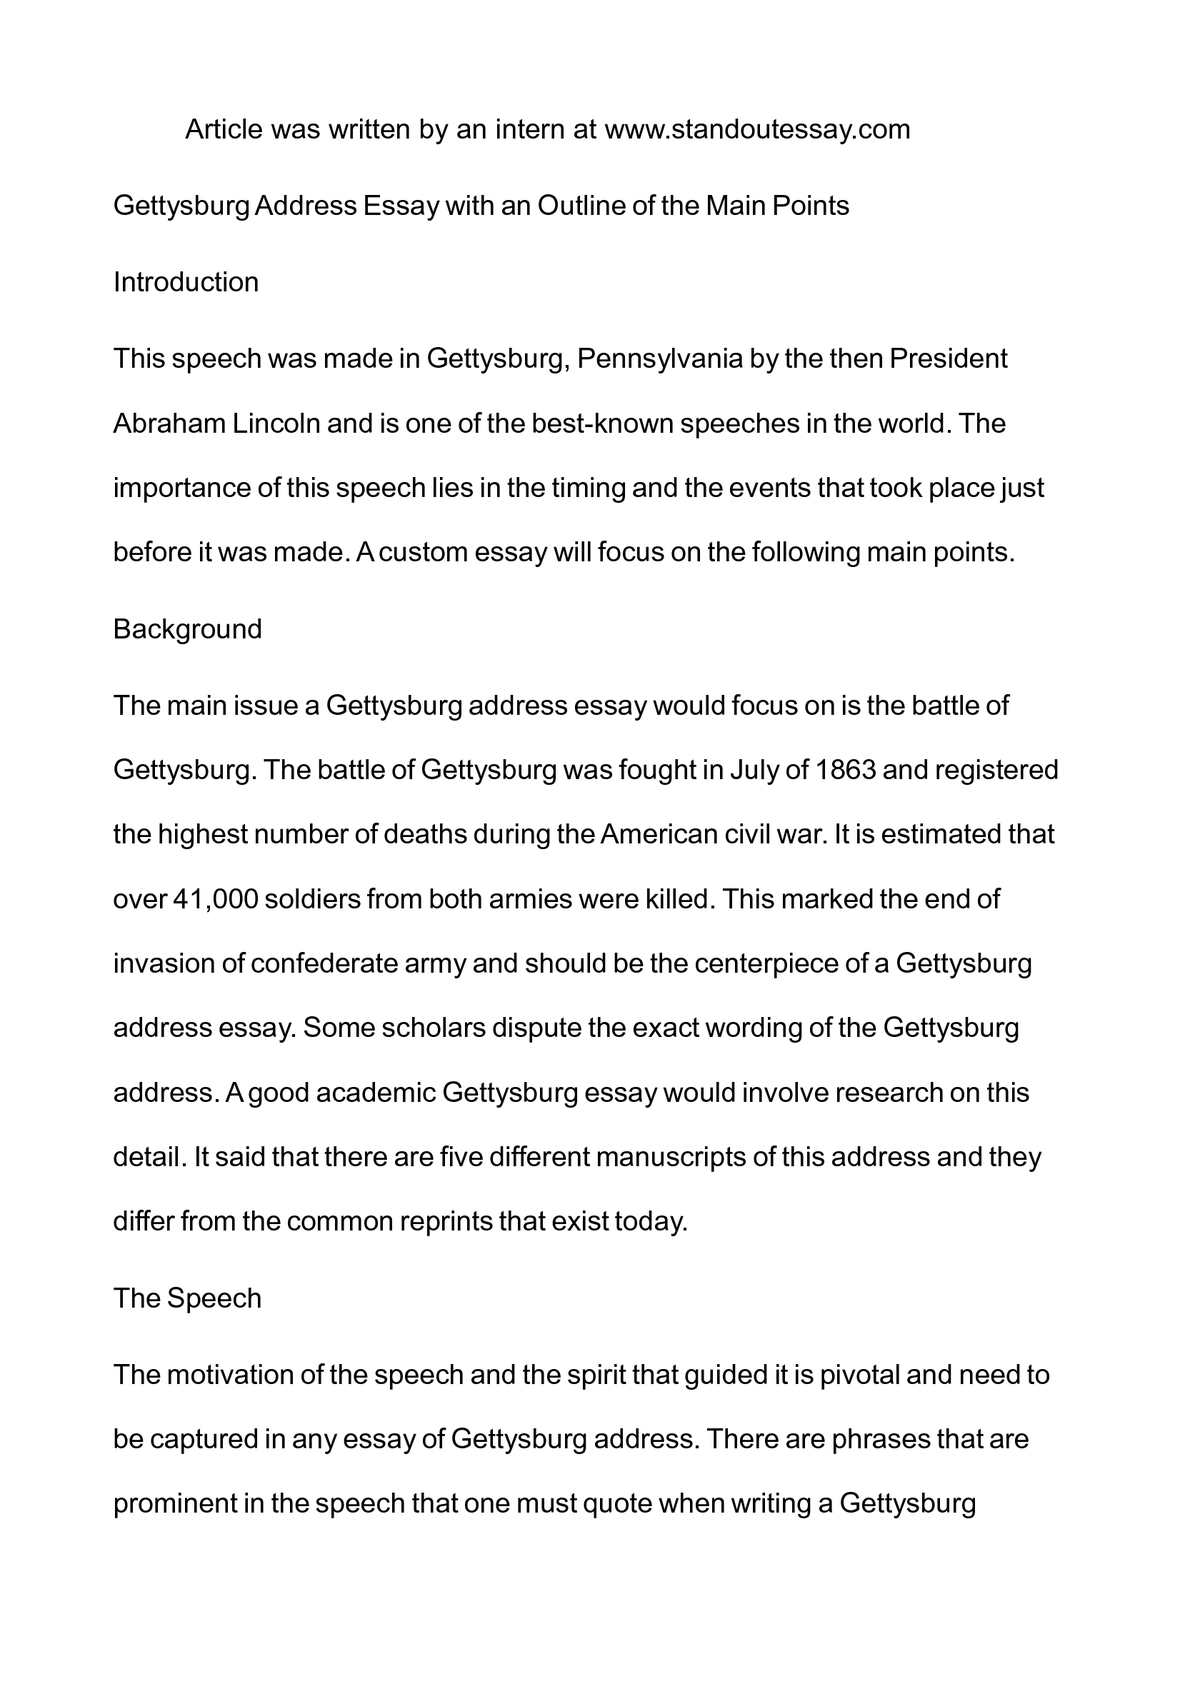 017 Proper Essay Form Example Formidable Paper Format Reflection Full